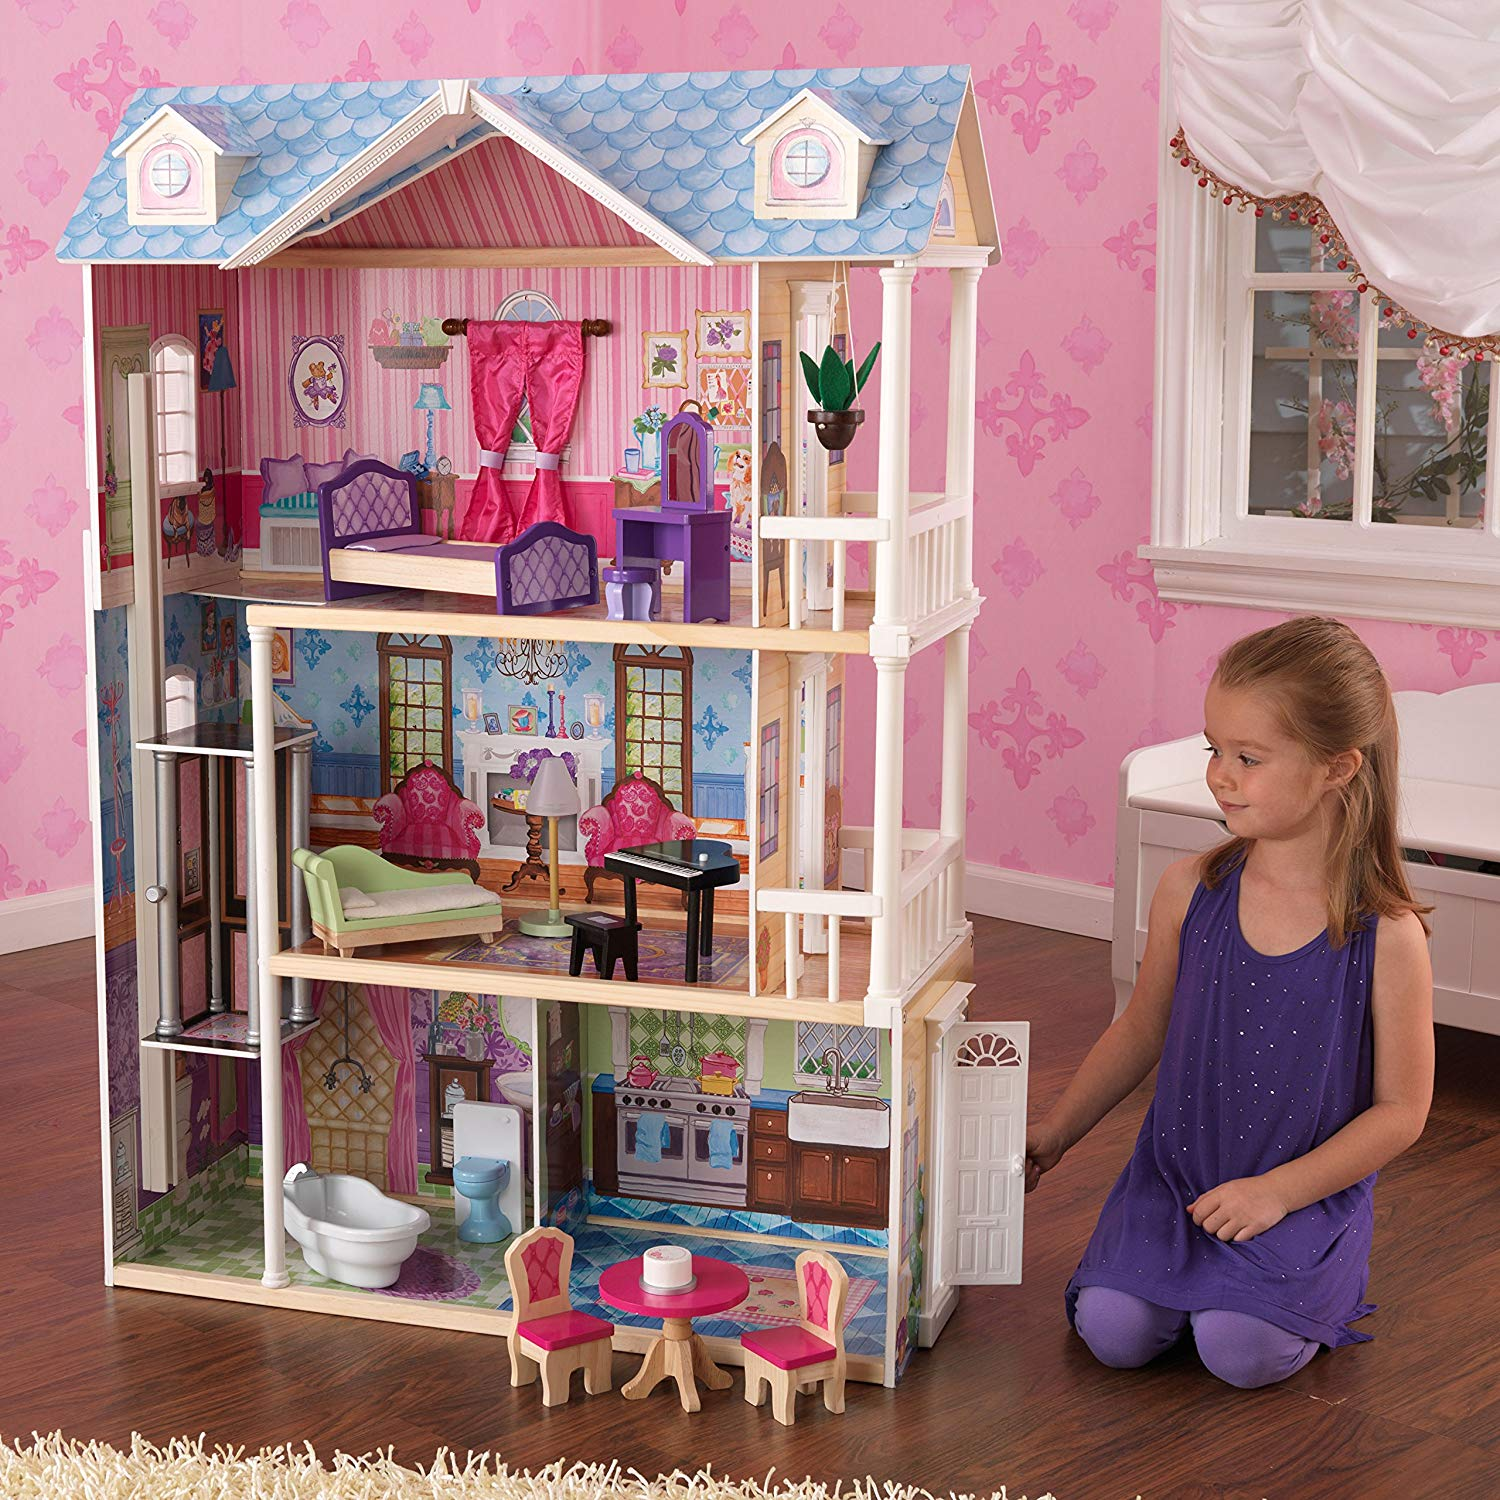 Dreamy Dollhouse with Furniture - golden birthday gift ideas for her